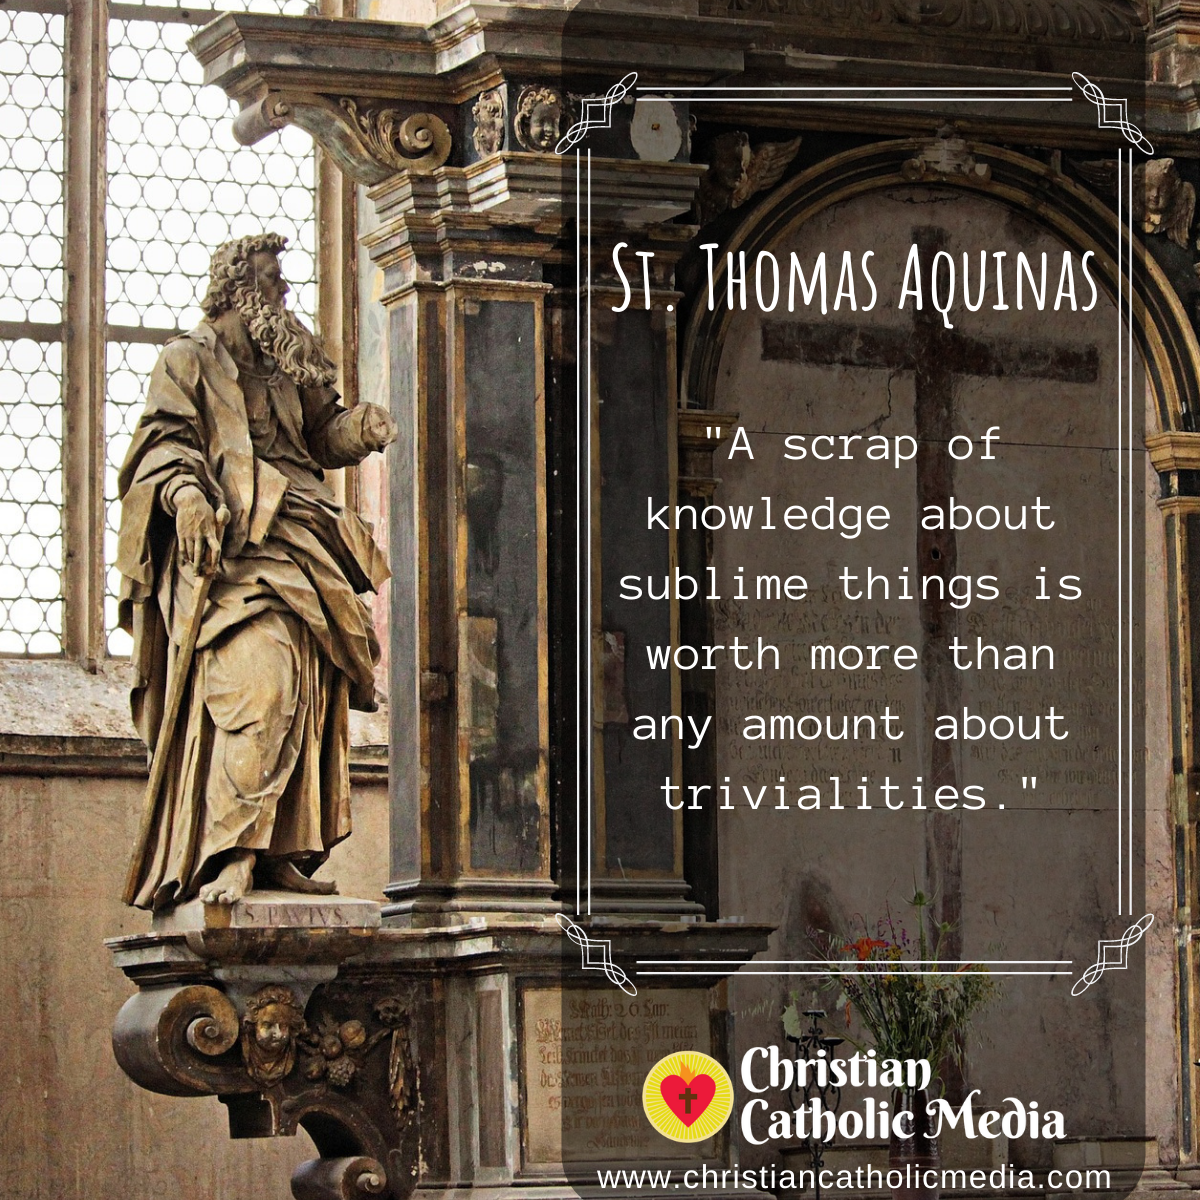 St. Thomas Aquinas - Saturday November 23, 2019